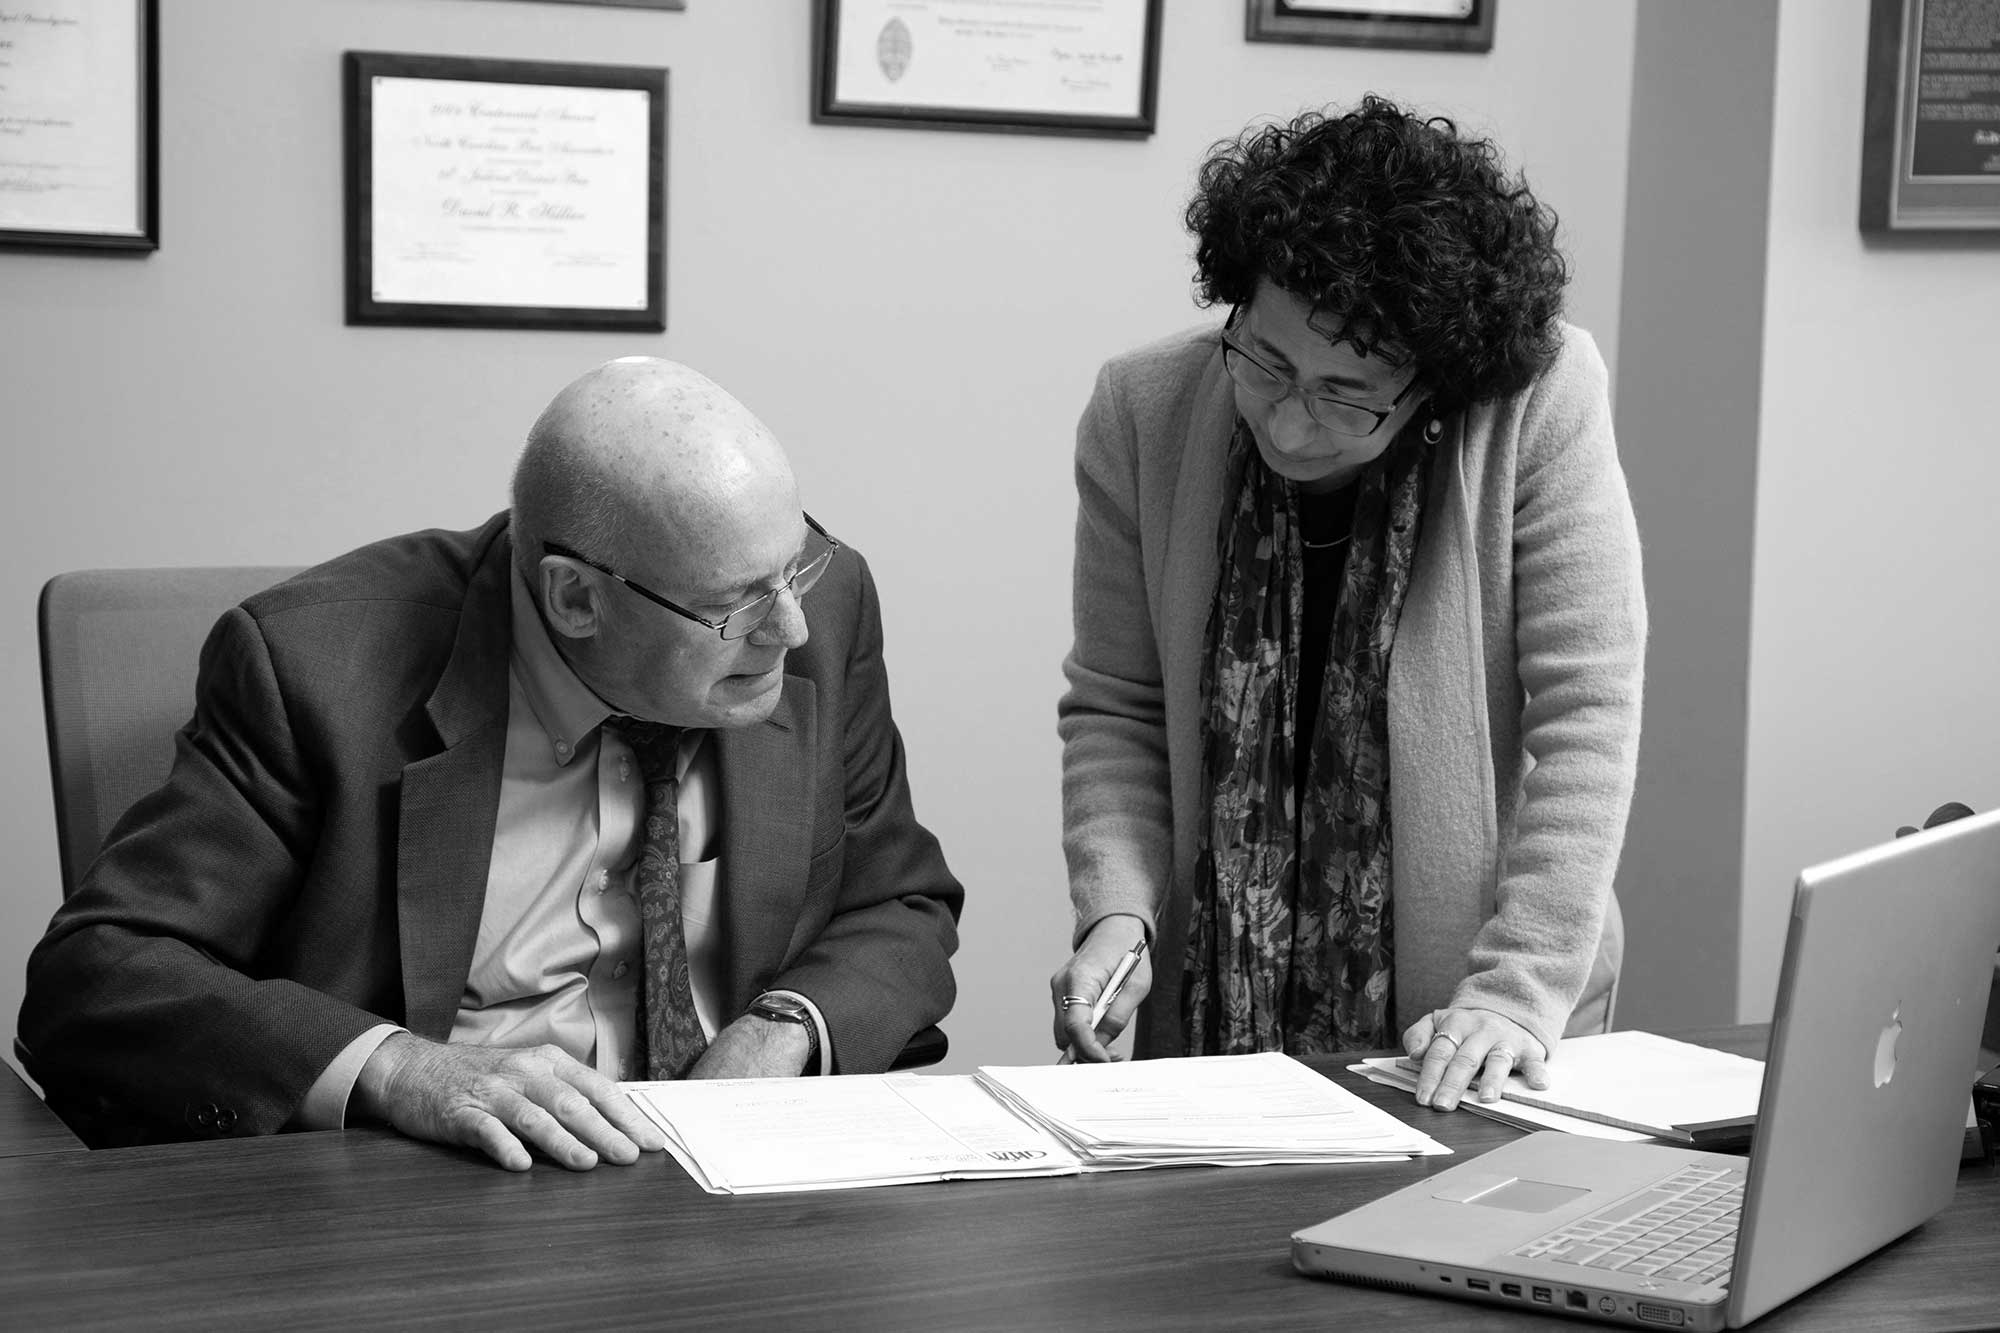 David Hillier with his long time assistant, Idelle David, reviewing a filing